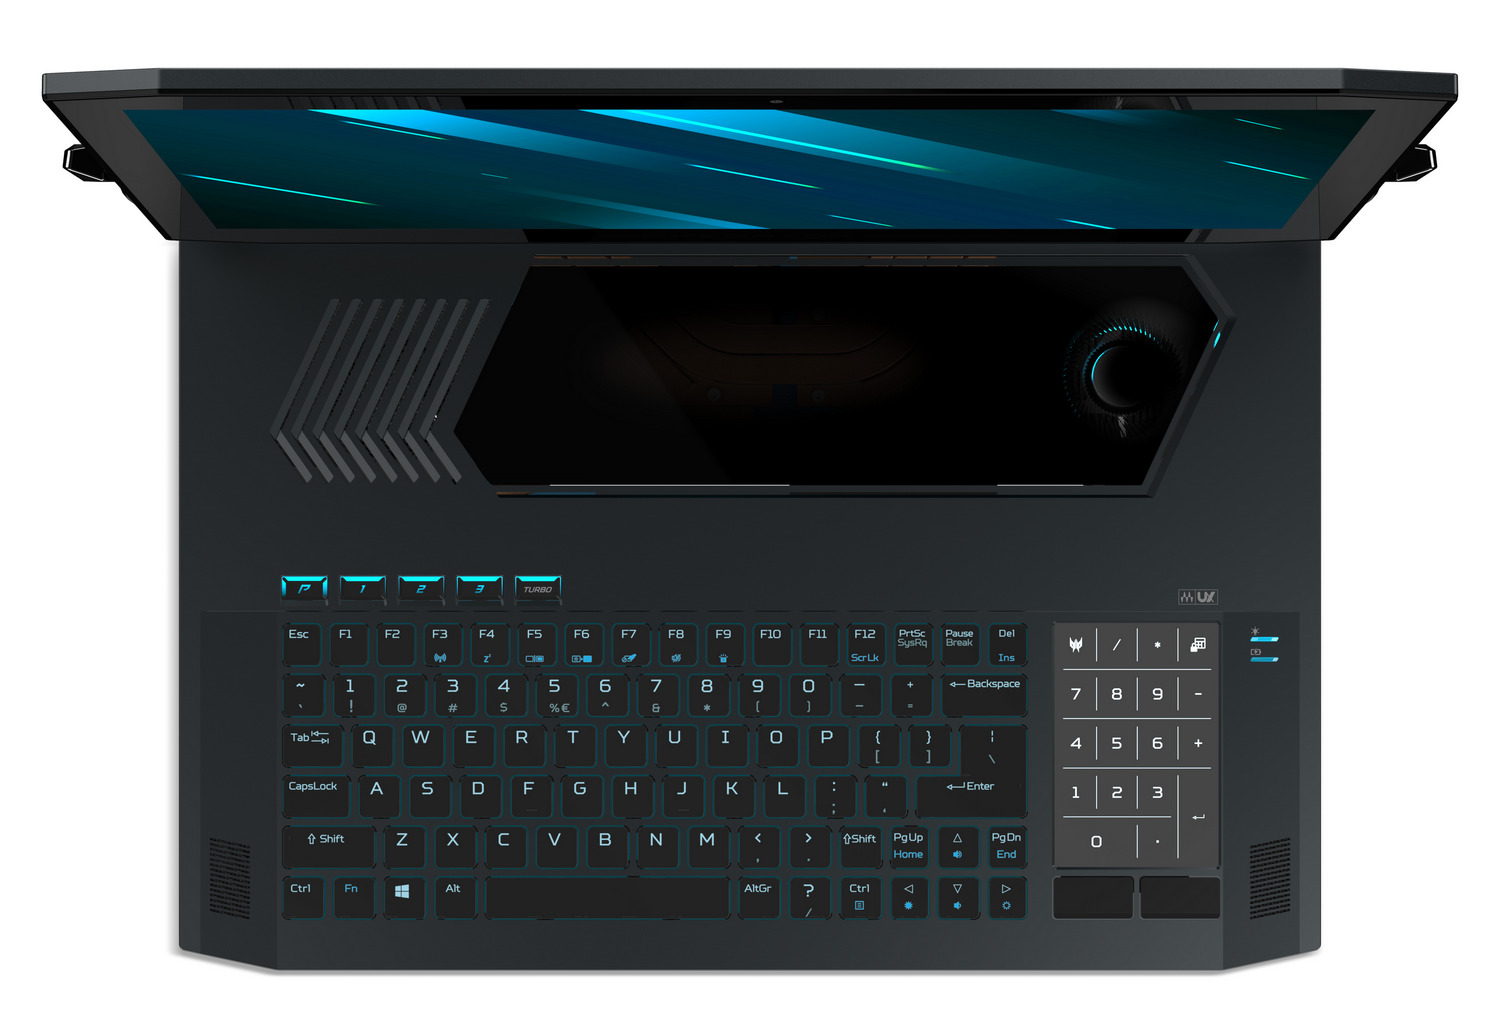 Acer Predator Triton gaming laptops are filled with new hardware